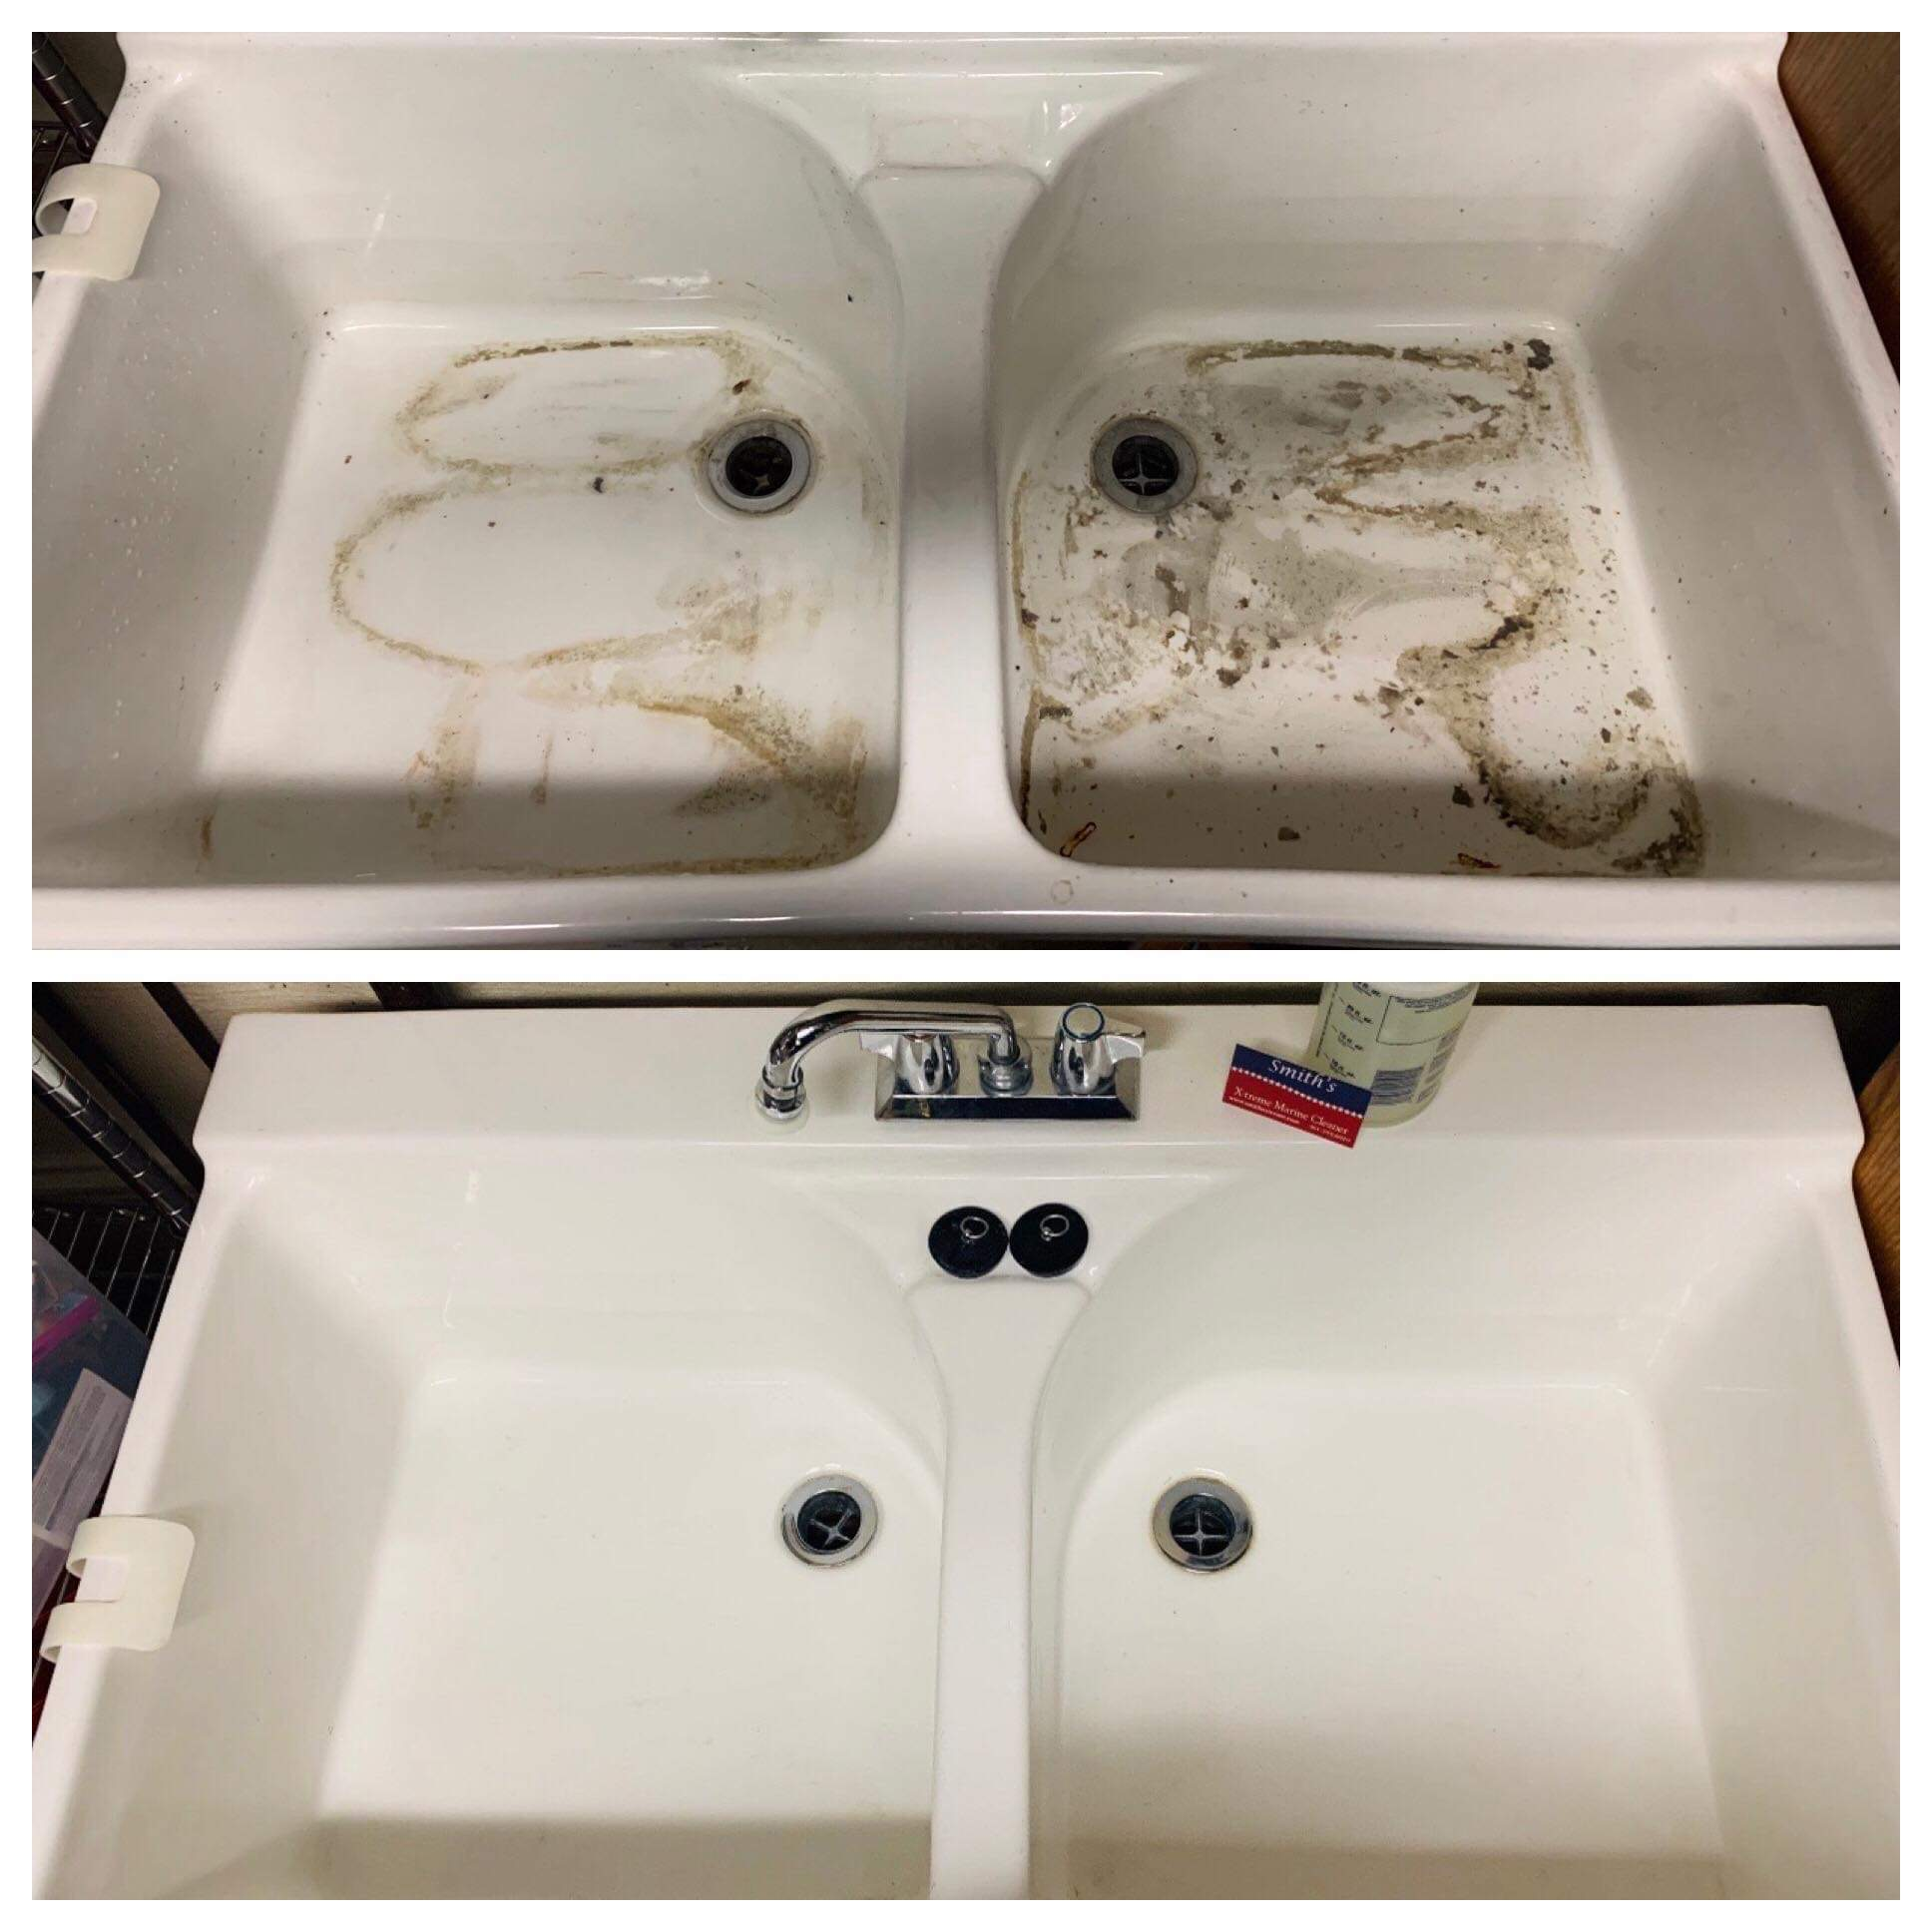 WASH BASIN BEFORE CLEANING & AFTER